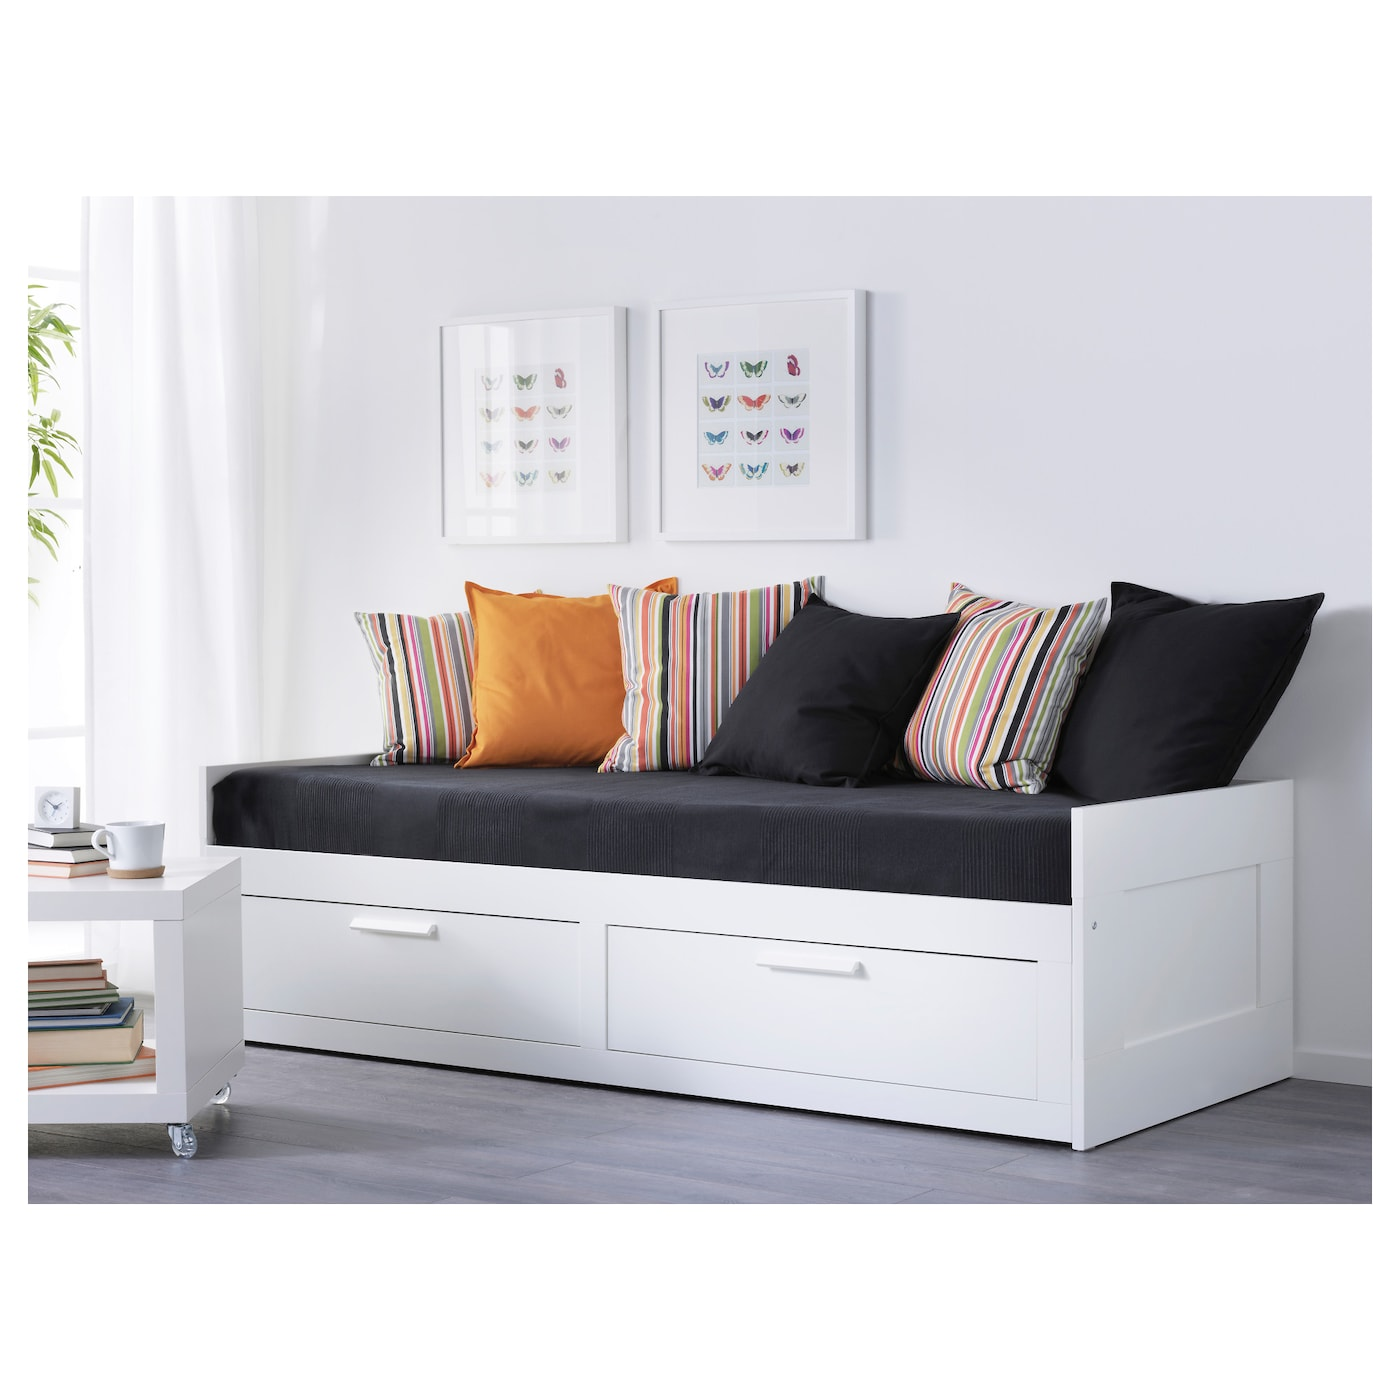 Brimnes Daybed Frame With 2 Drawers White Twin Ikea